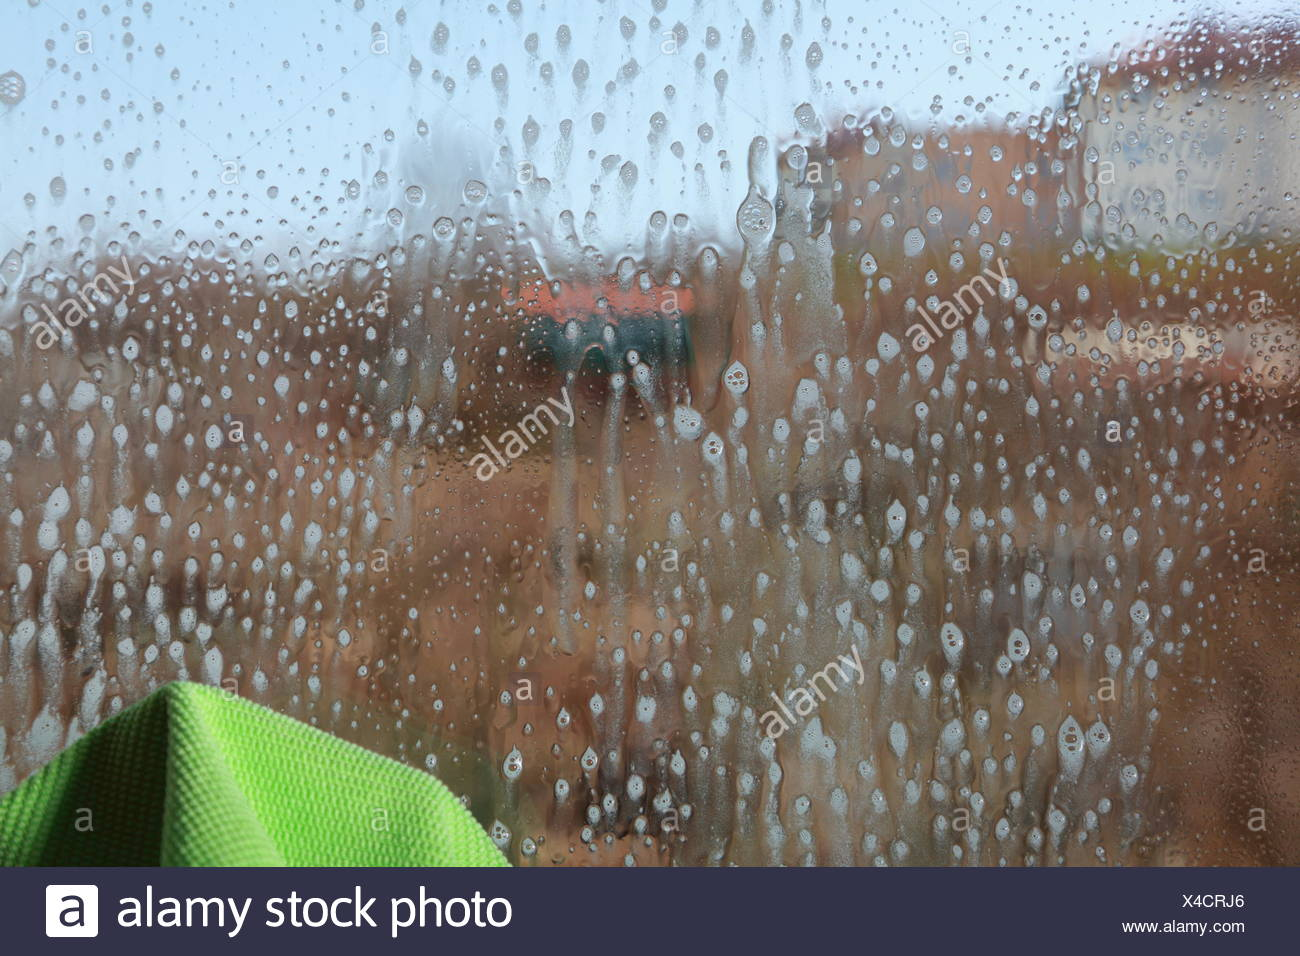 Drops on the windowpane, cleaning window with spray